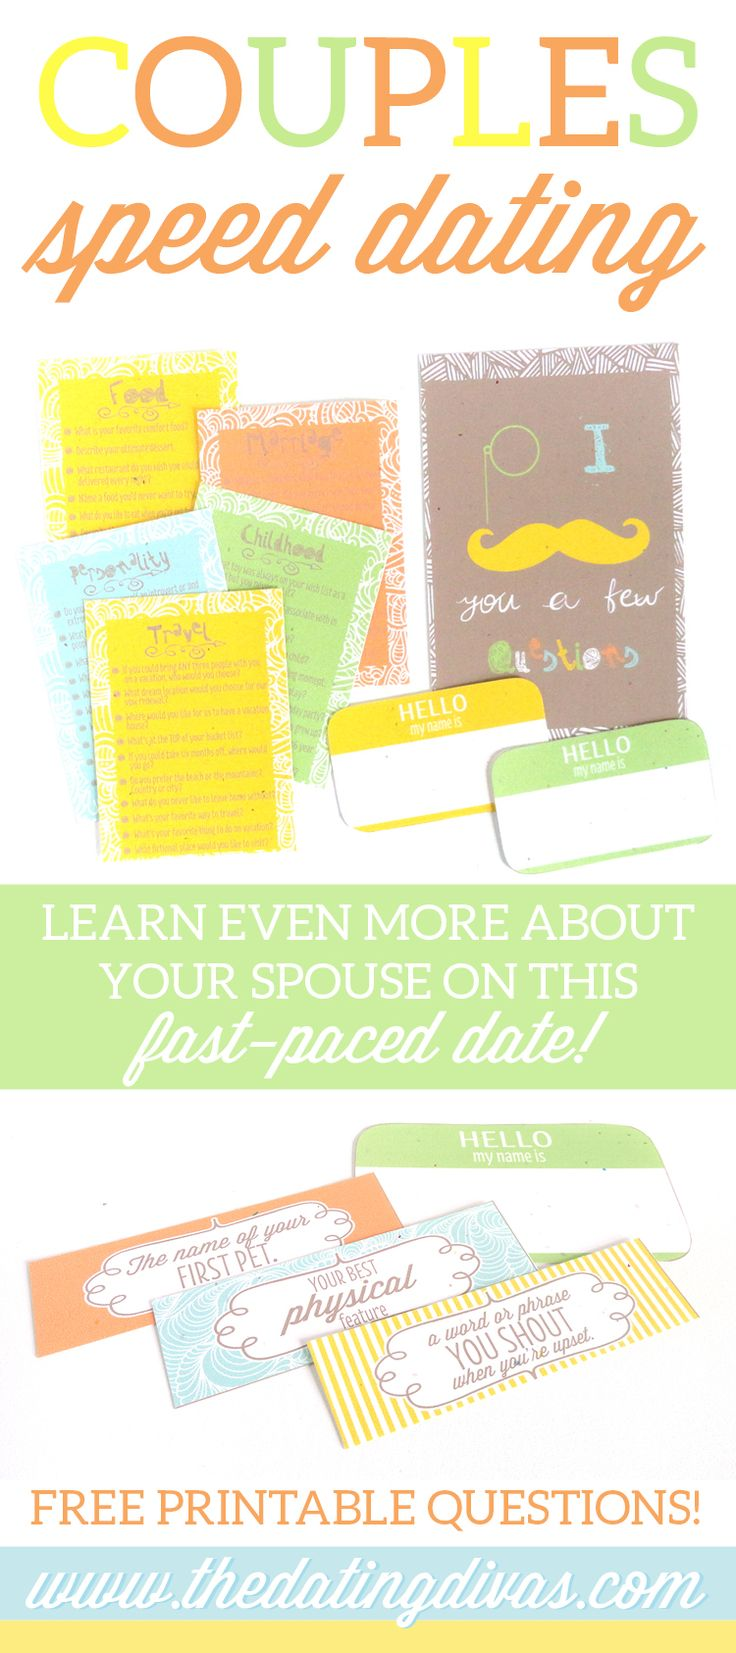 Quick and easy questions to go on a speed date with your spouse! Printables designed by www.cassialeighdesigns.com www.TheDatingDivas.com